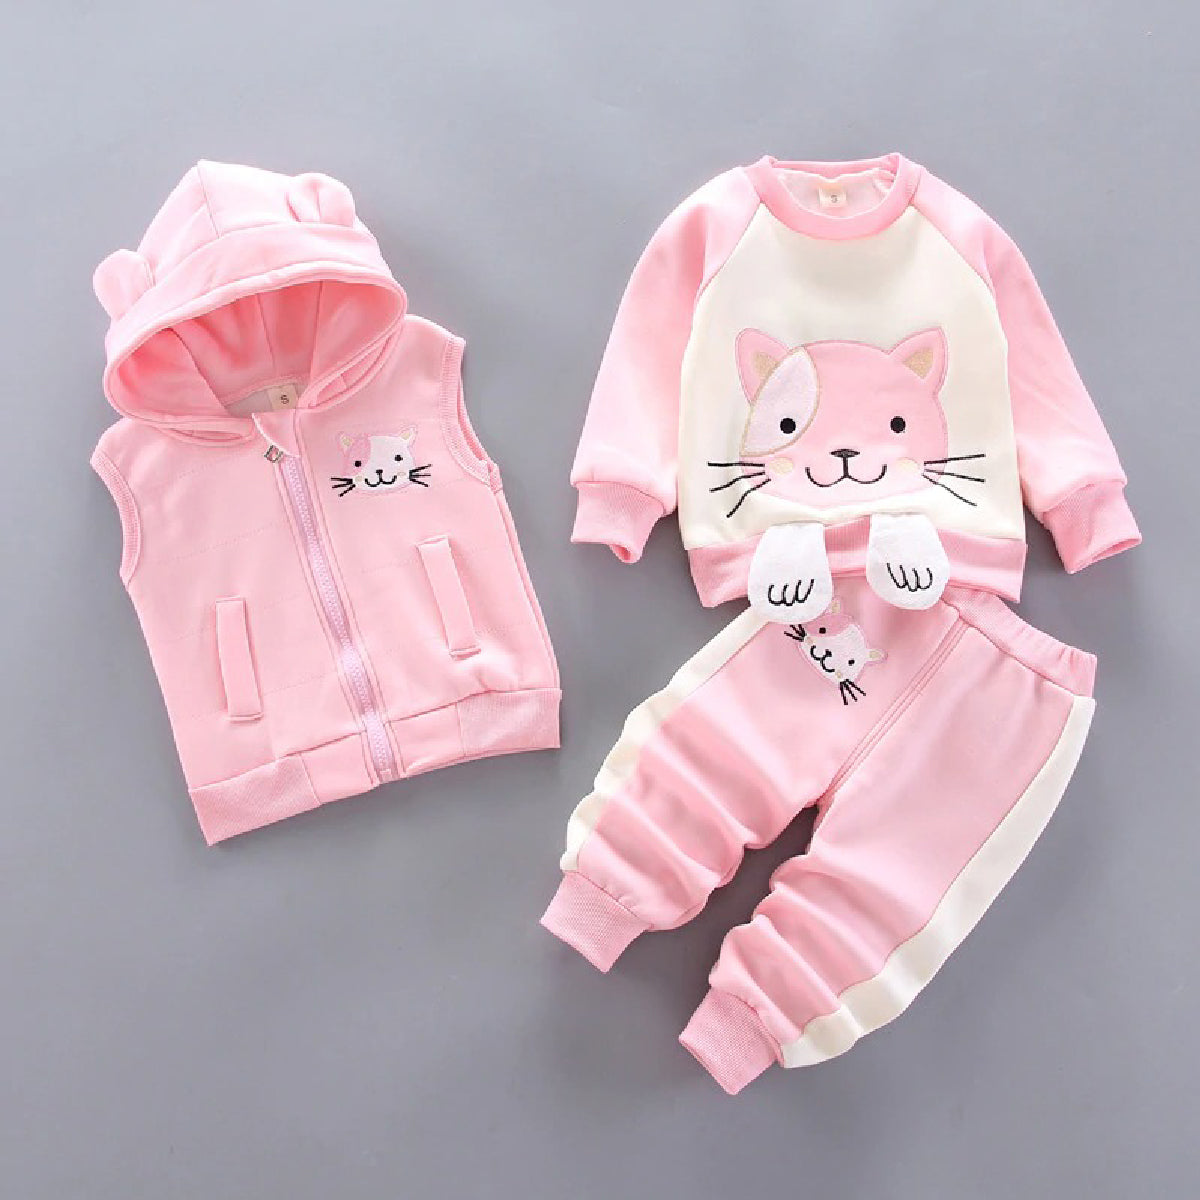 Baby Zone Animal Winter Outfit ™